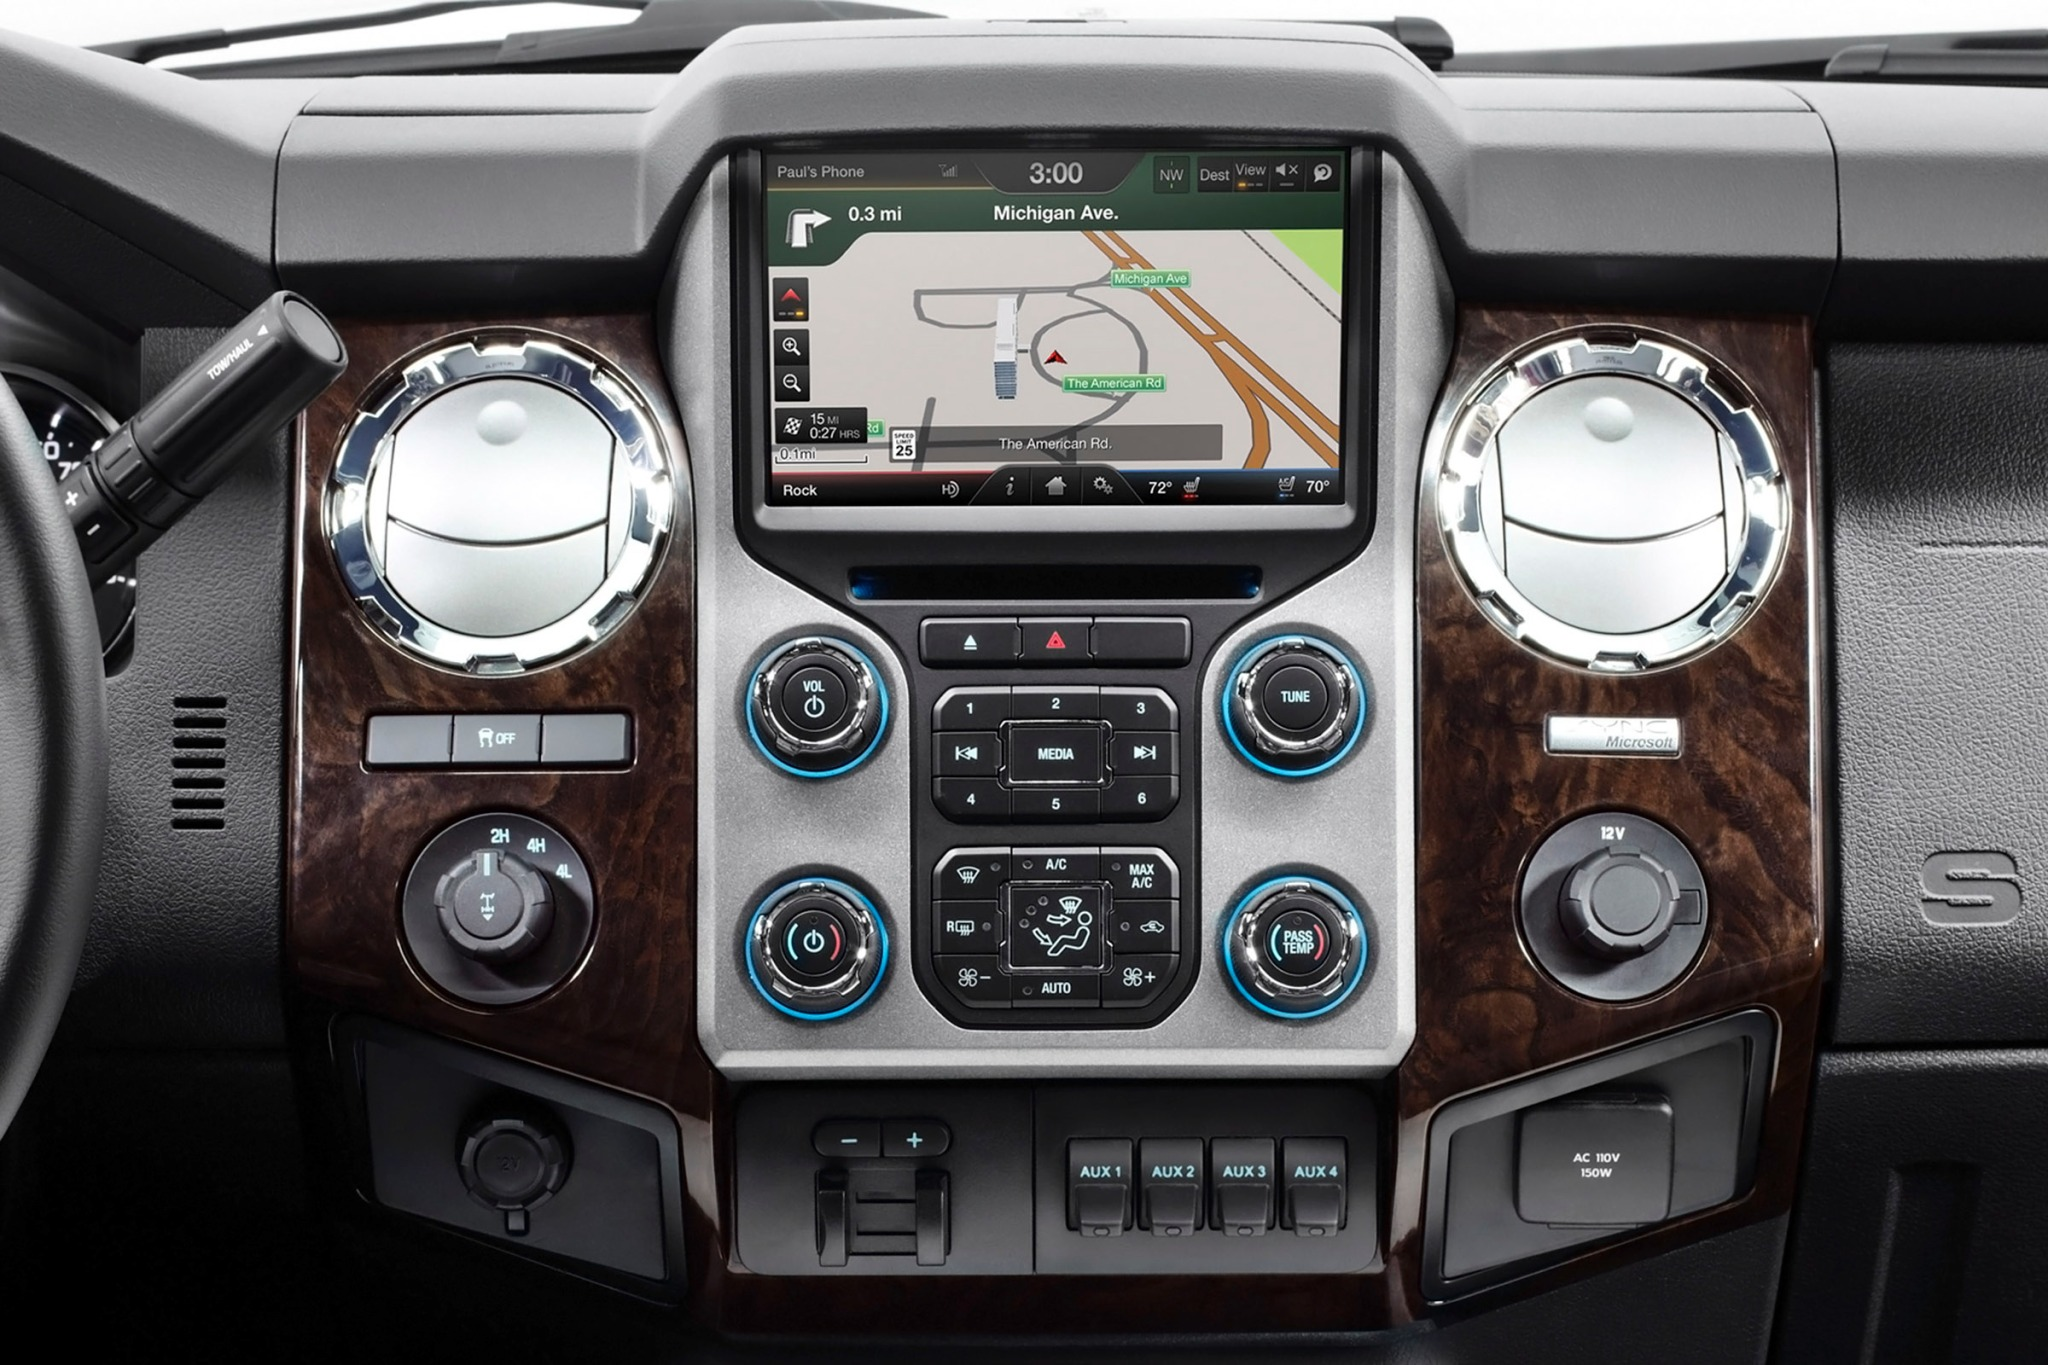 2015 Ford F-450 Super Dut interior #7